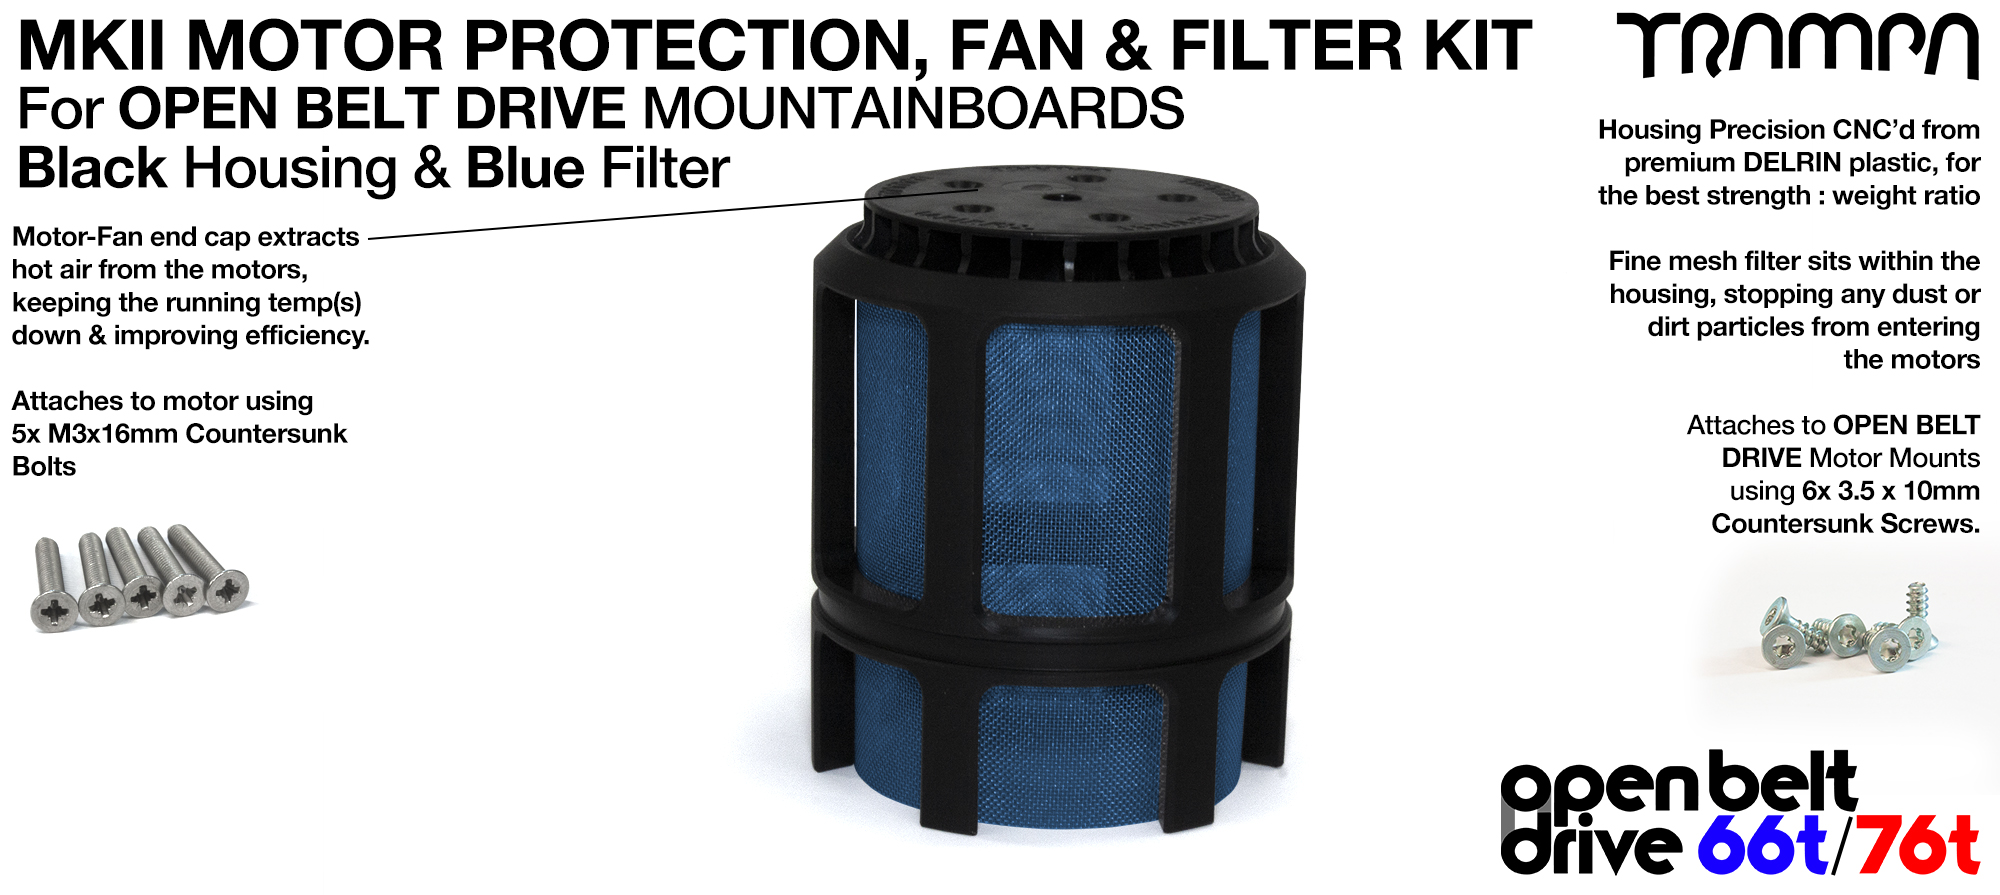 1x OBD MKII Motor protection Sleeve with BLUE Filter